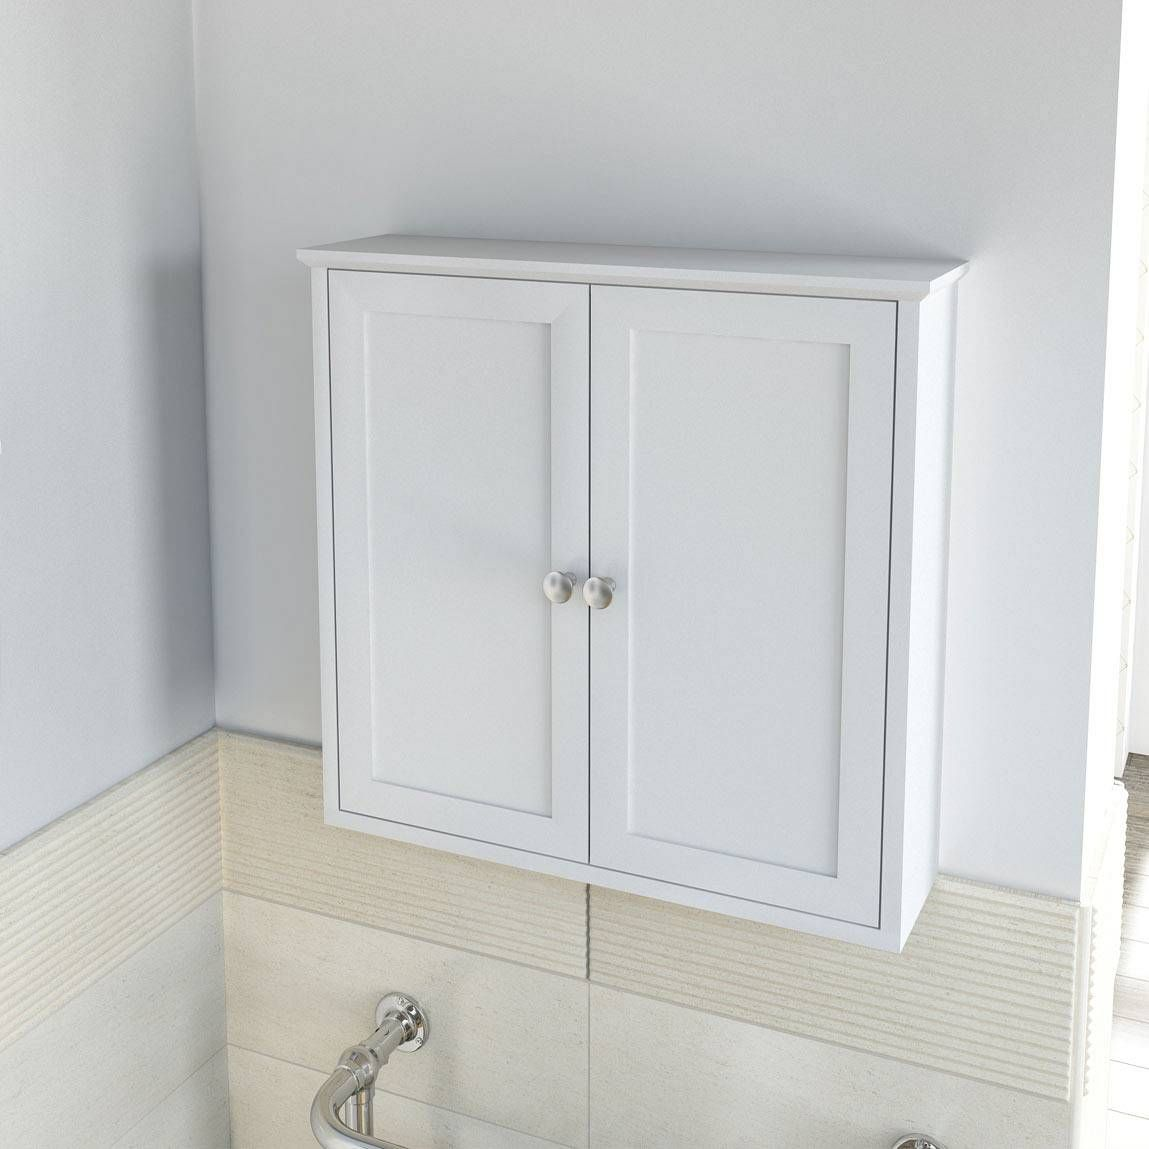 camberley white wall mounted cabinet �60 also in sage green